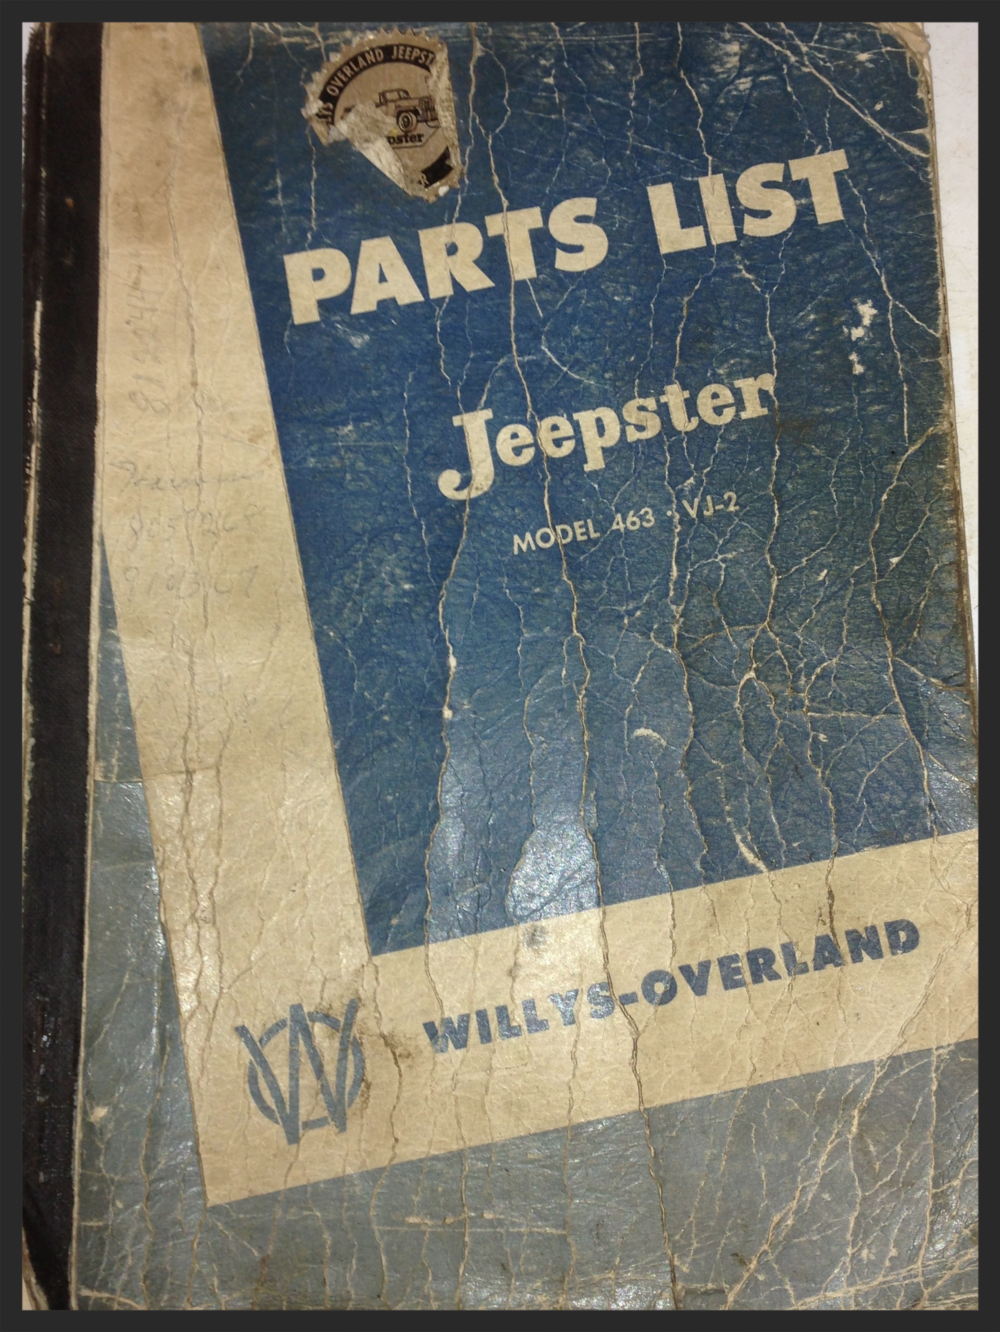 SHOP:  Willys Jeepster parts